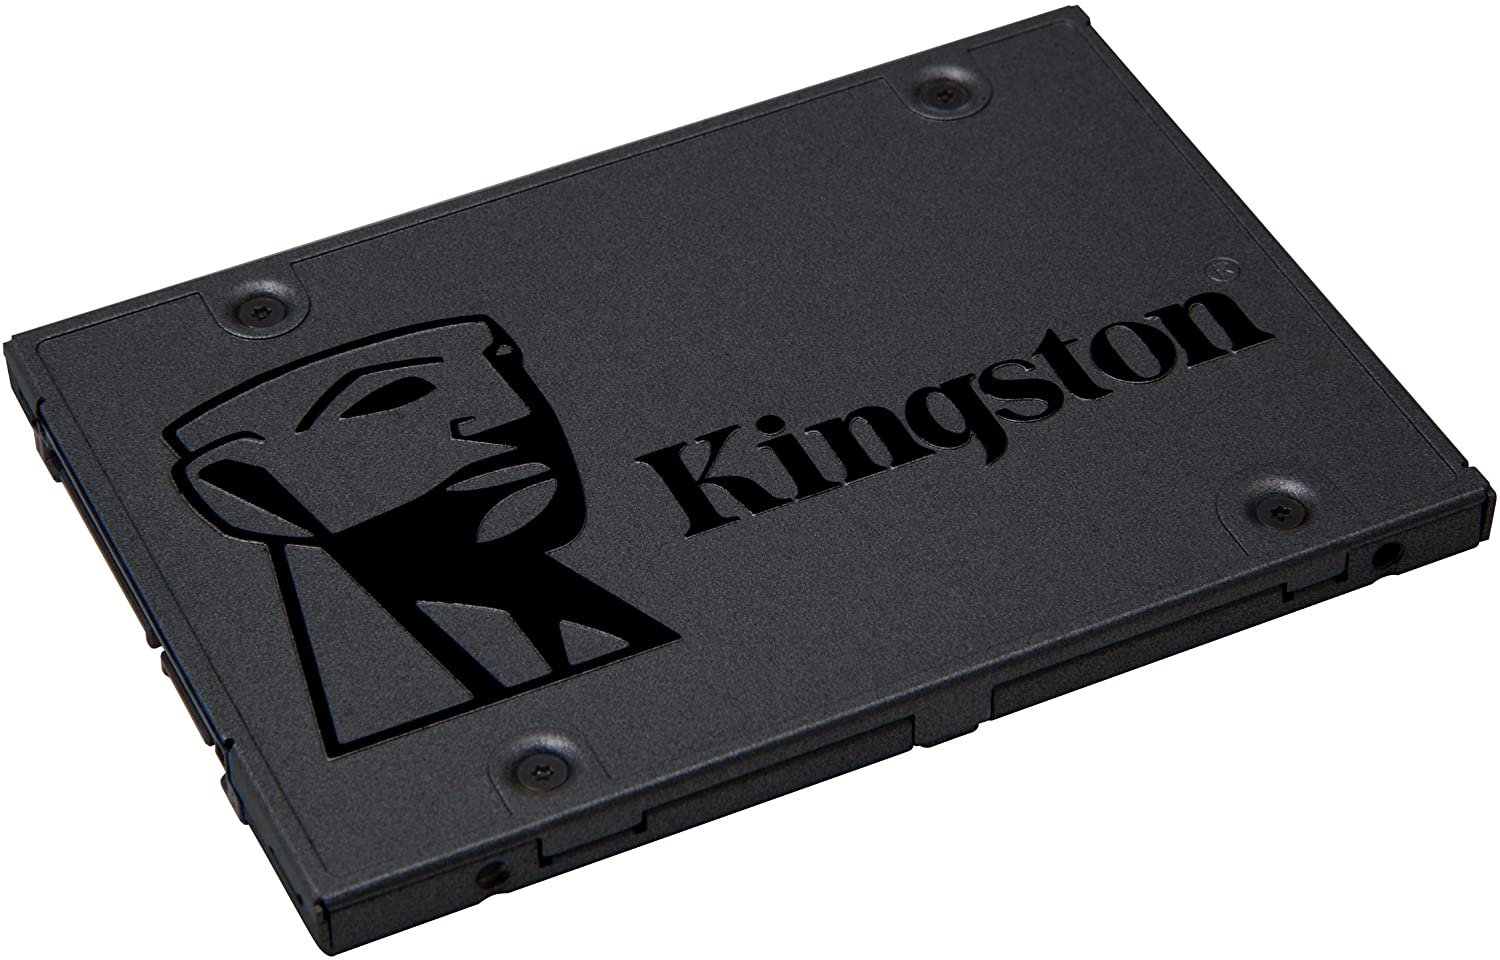 Kingston - SQ500S37/960G Q500 - Solid State Drive - 960 GB - Internal - 2.5 - SATA 6GB/S